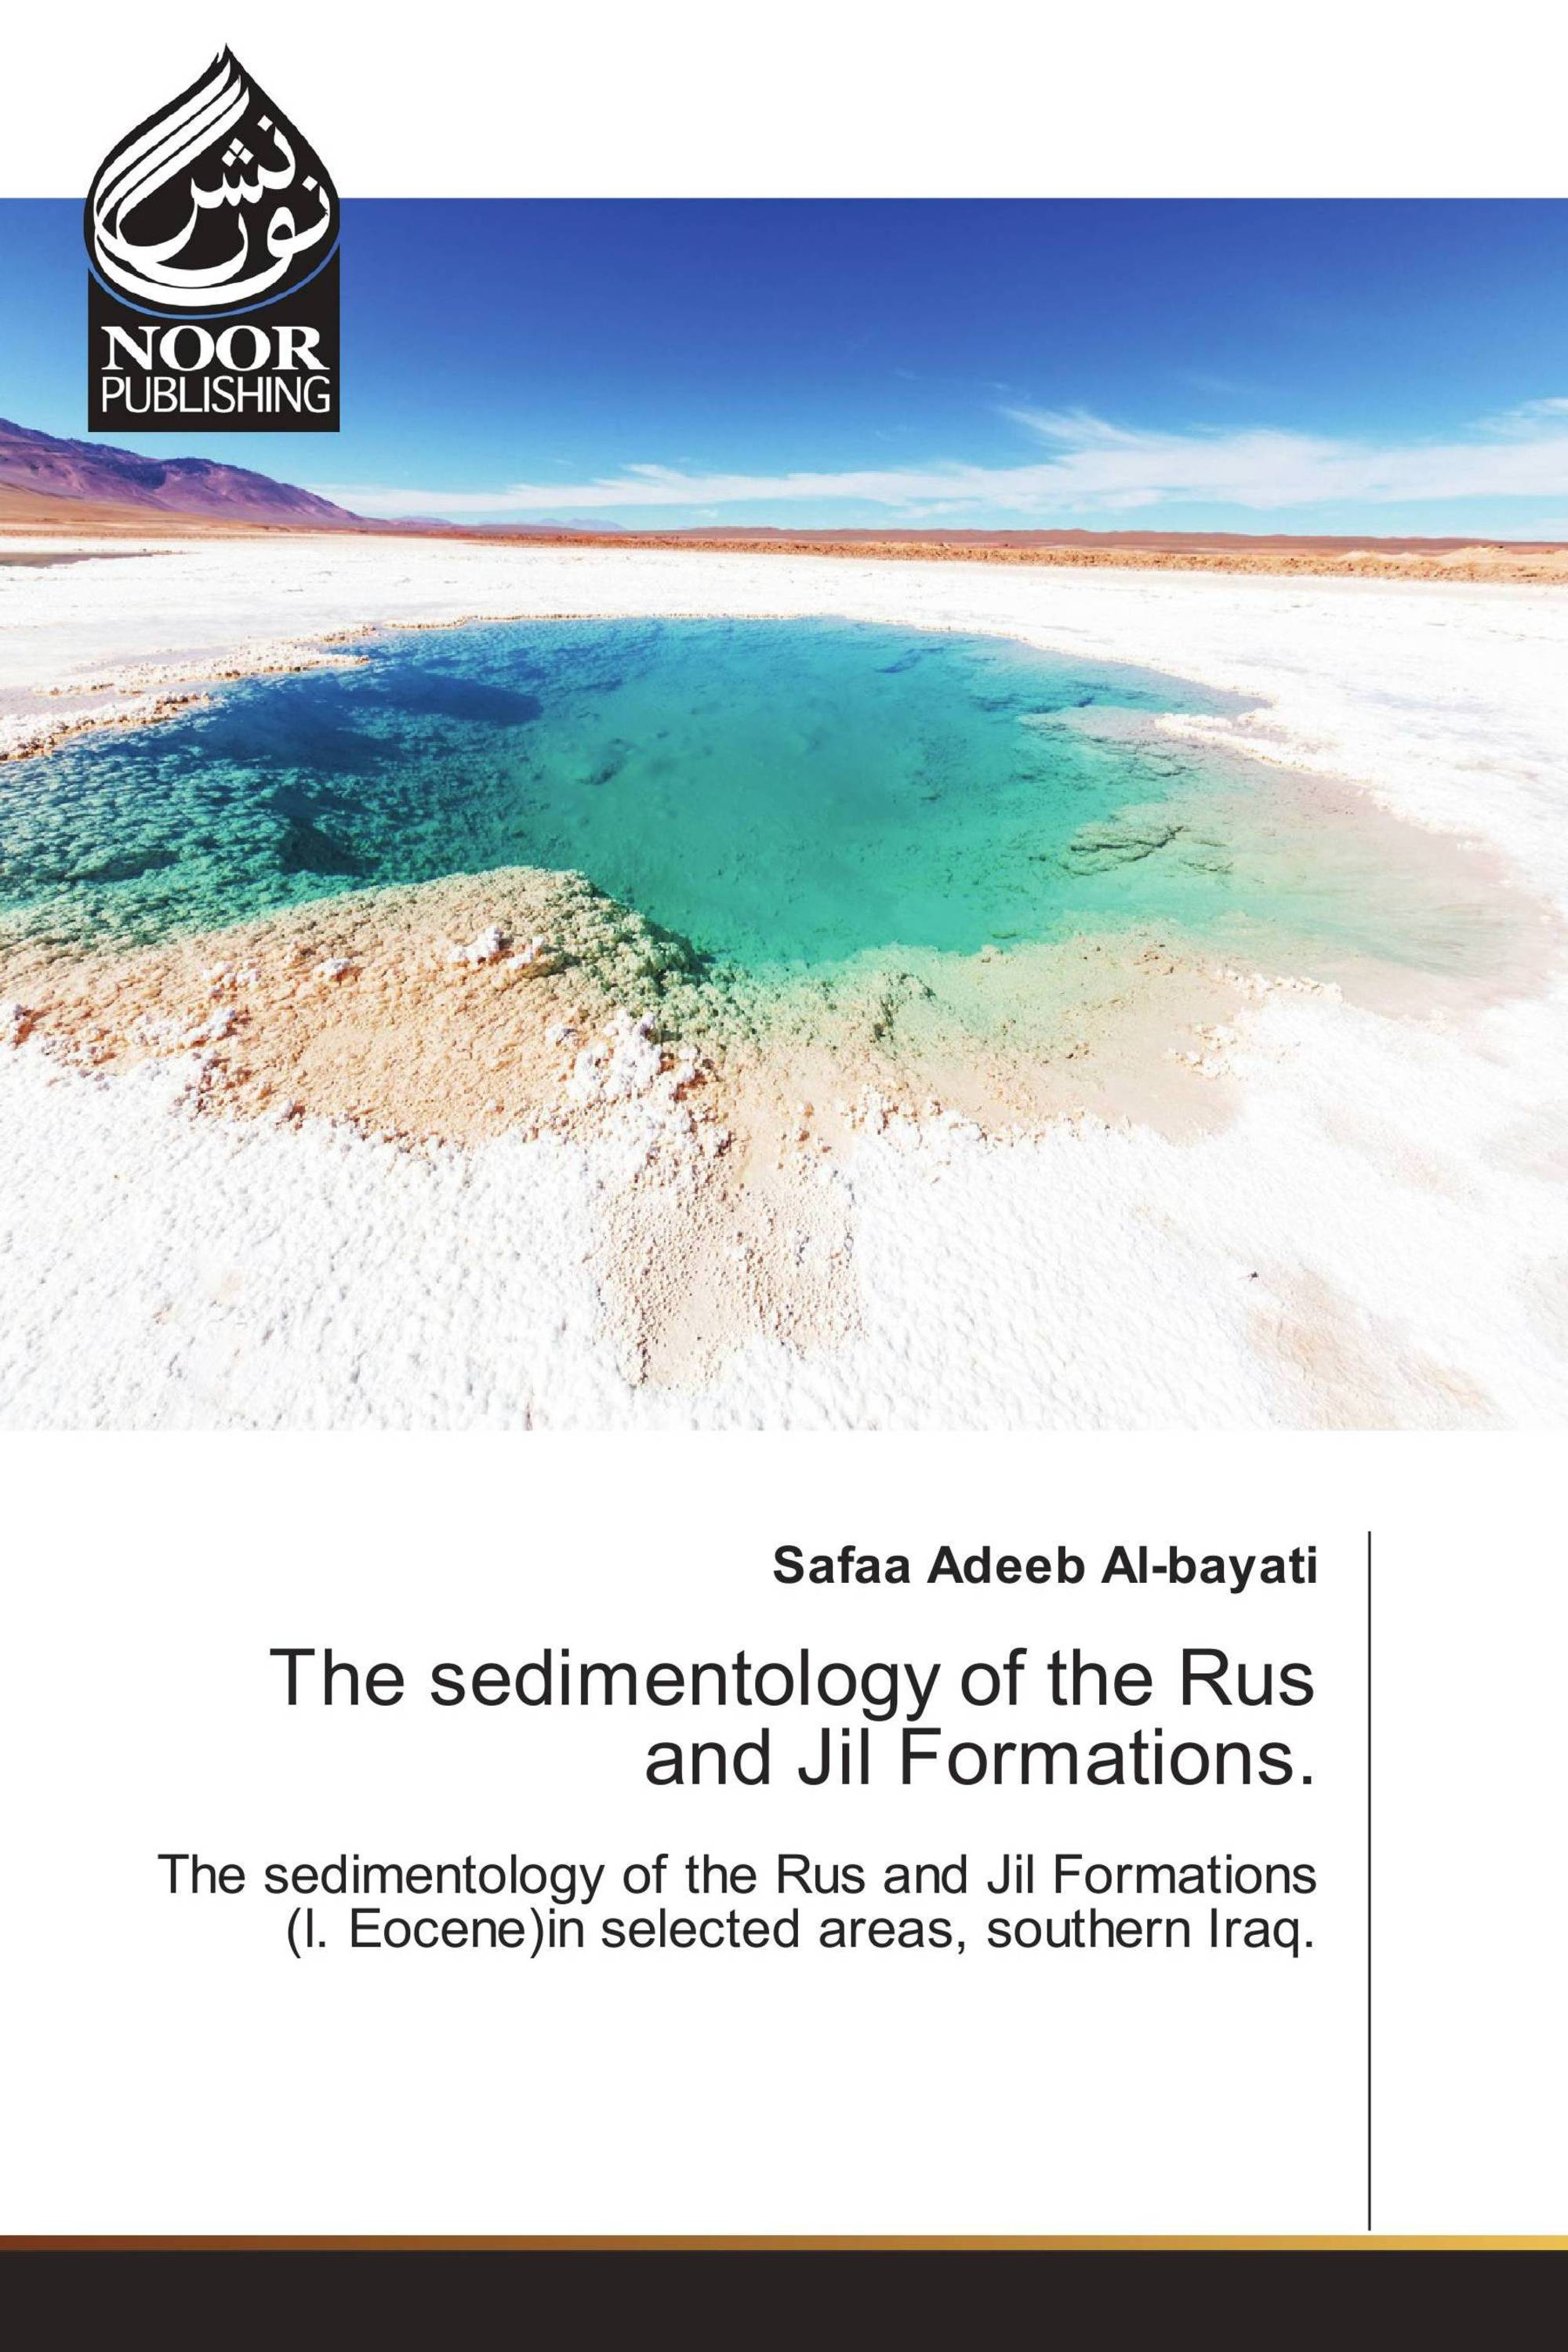 The sedimentology of the Rus and Jil Formations.